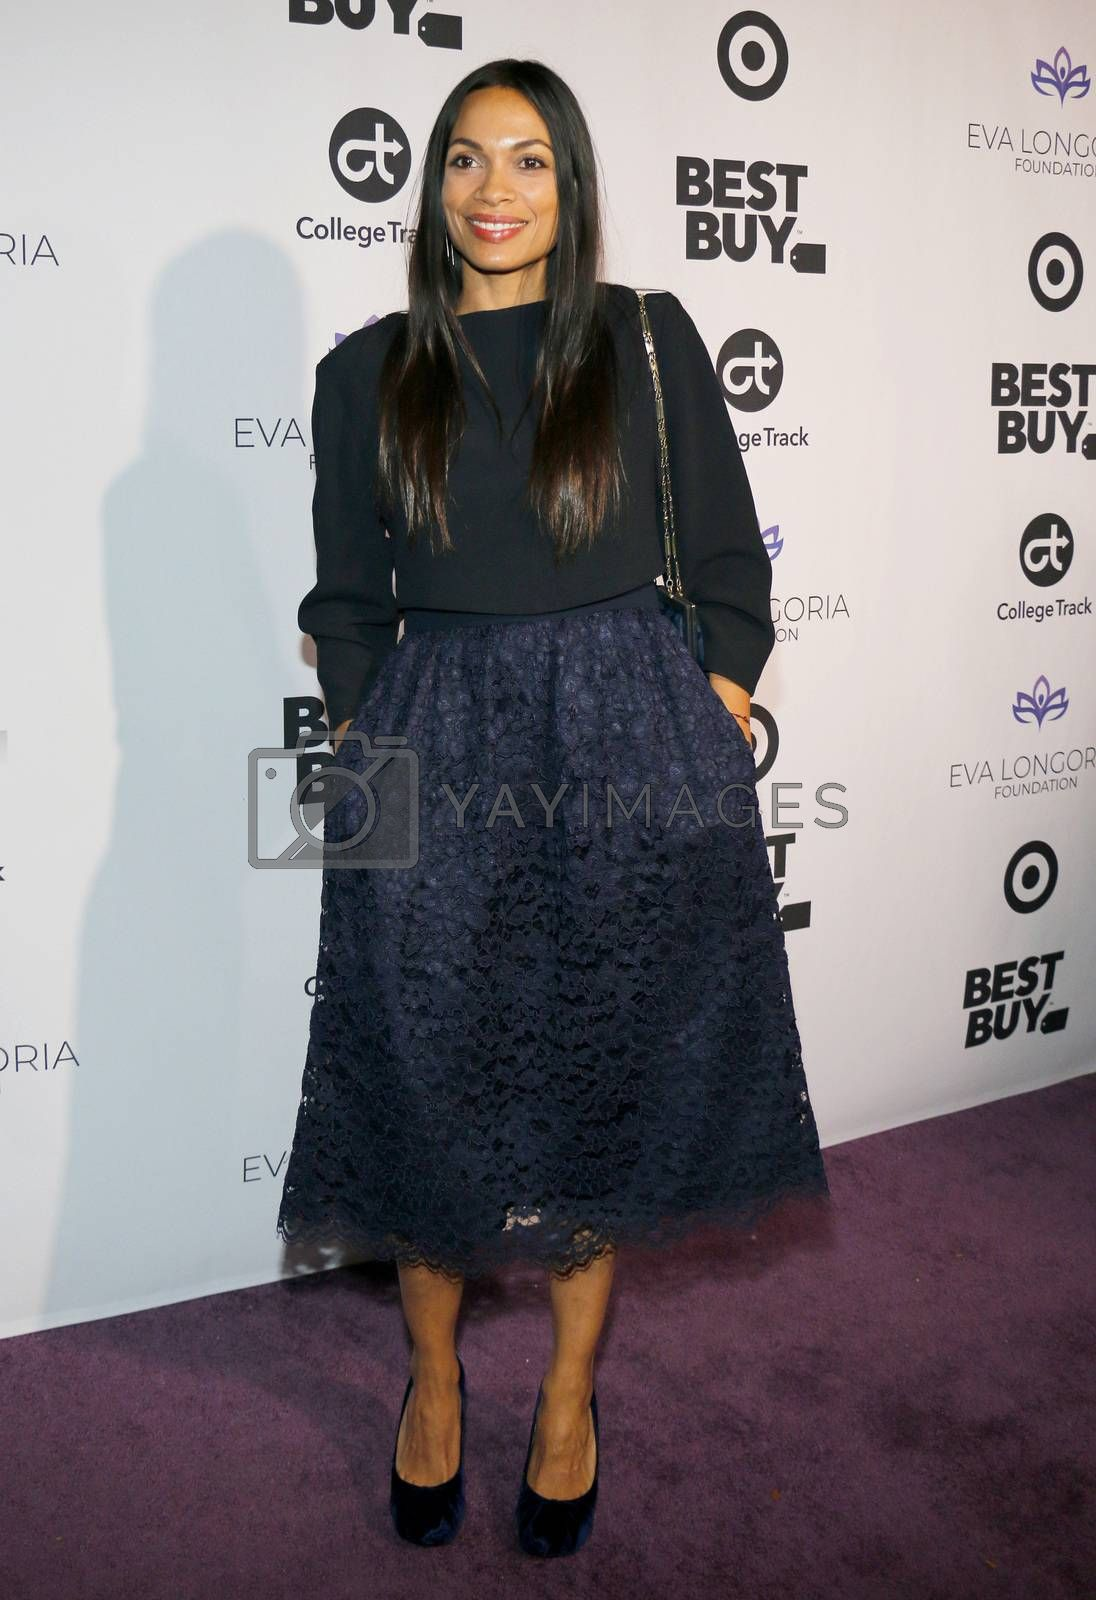 Rosario Dawson at the Eva Longoria Foundation Dinner Gala held at the Four Seasons Hotel in Beverly Hills, USA on November 8, 2018.